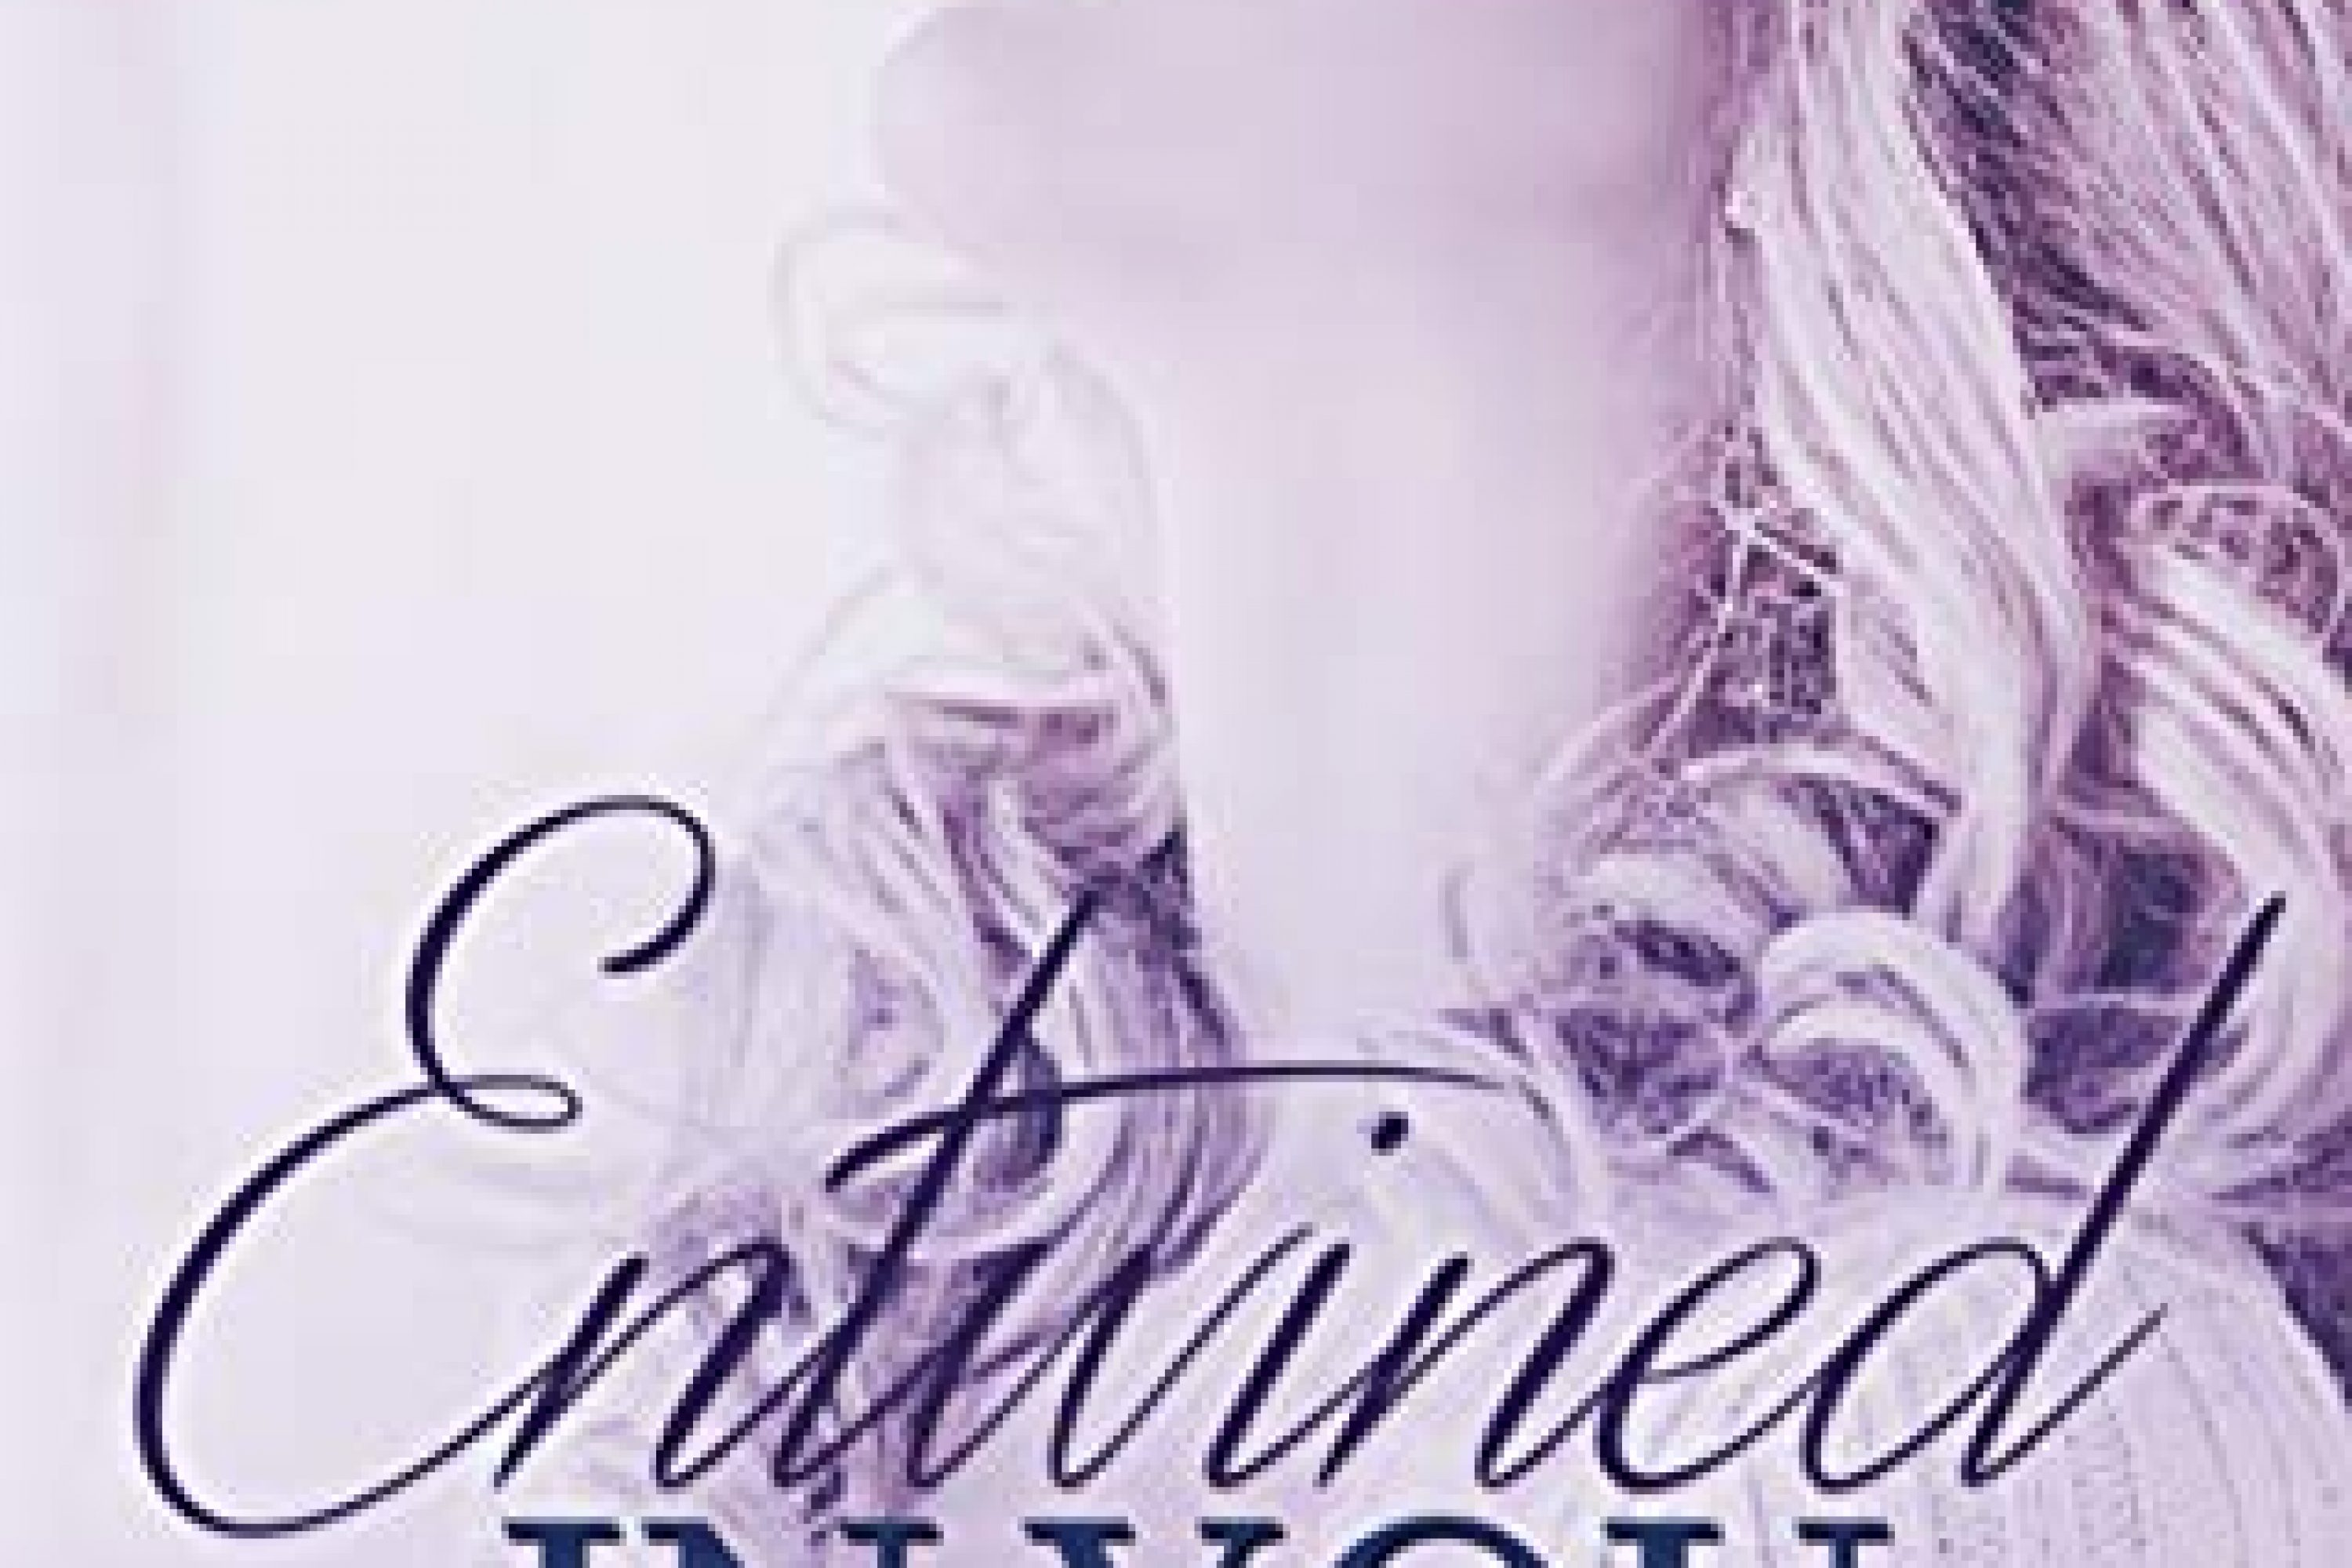 Review: Entwined IN YOU by Cassandra Night